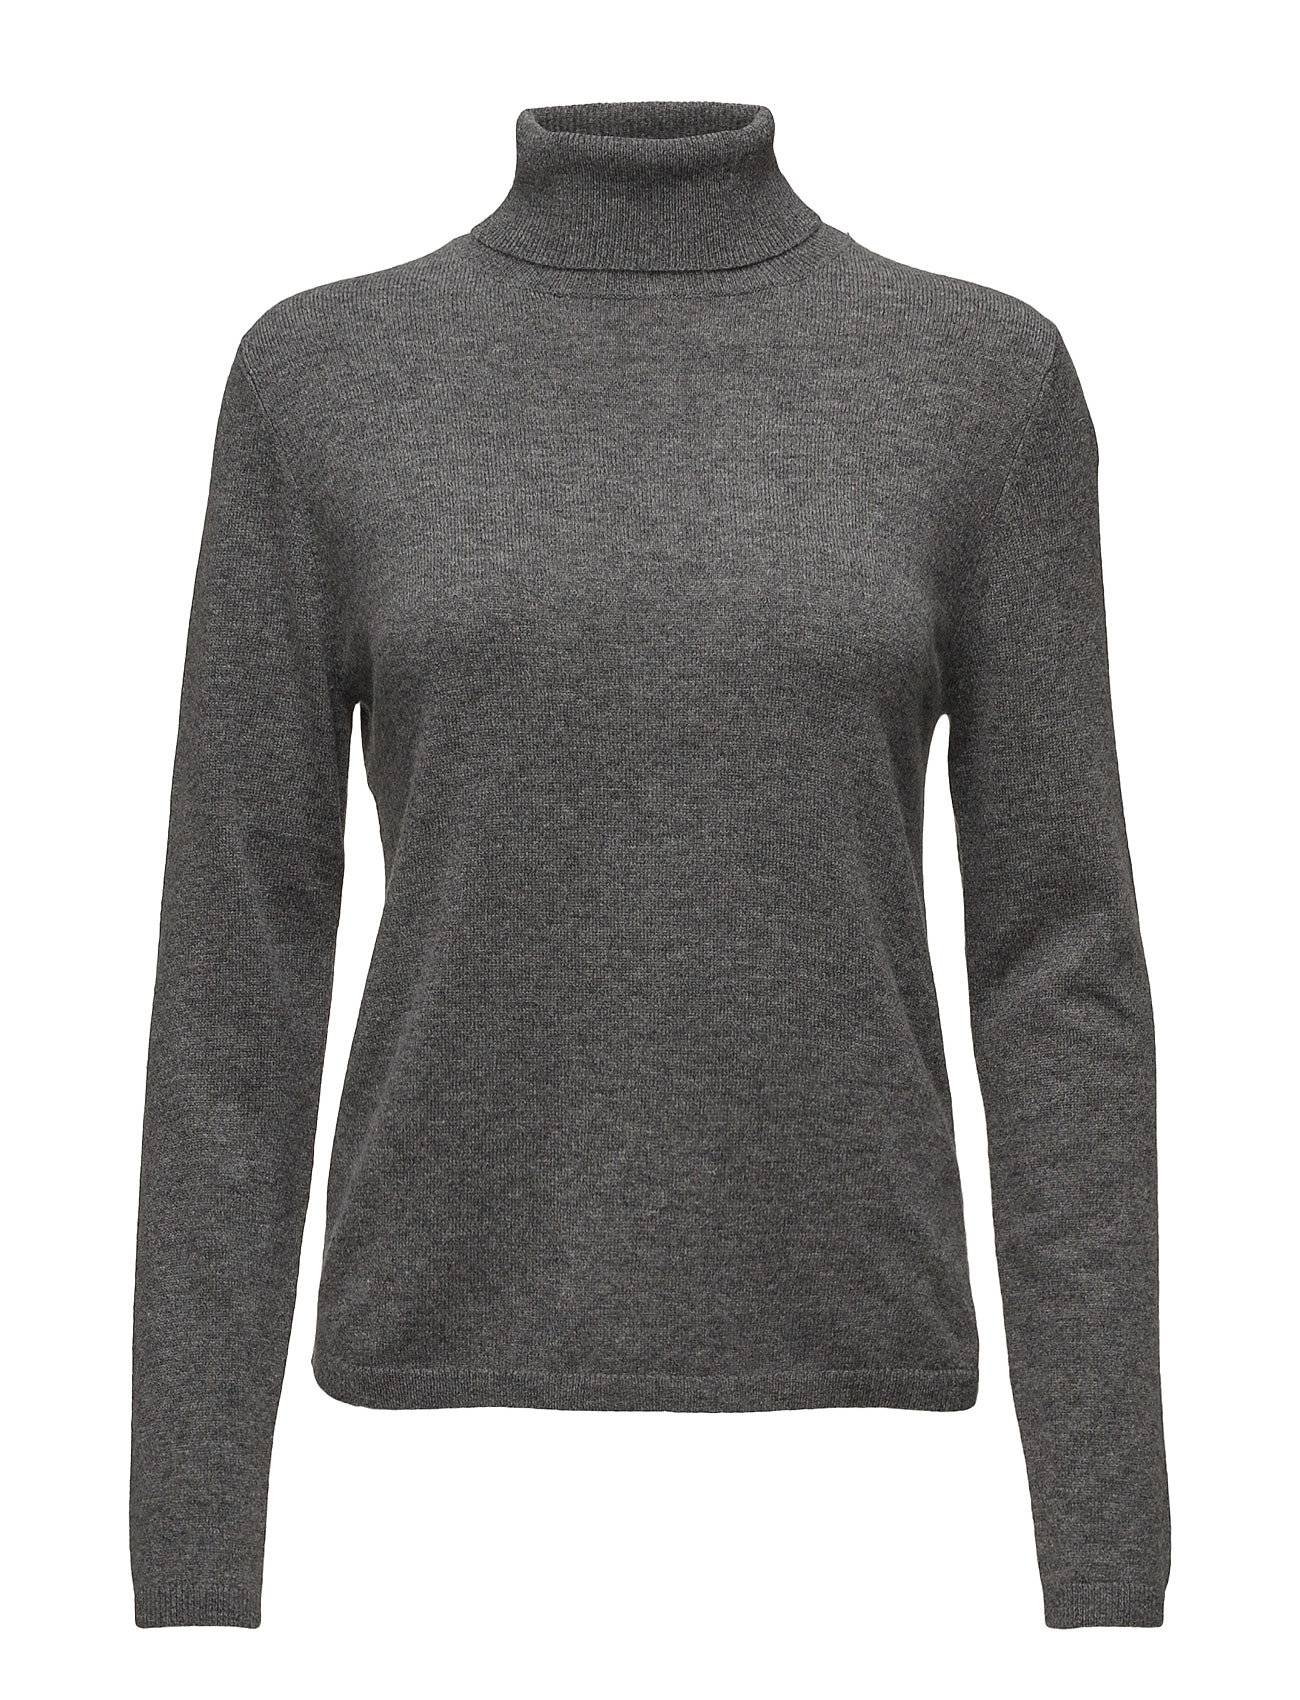 The Lab Cashmere Knit - Neri Rolled Neck